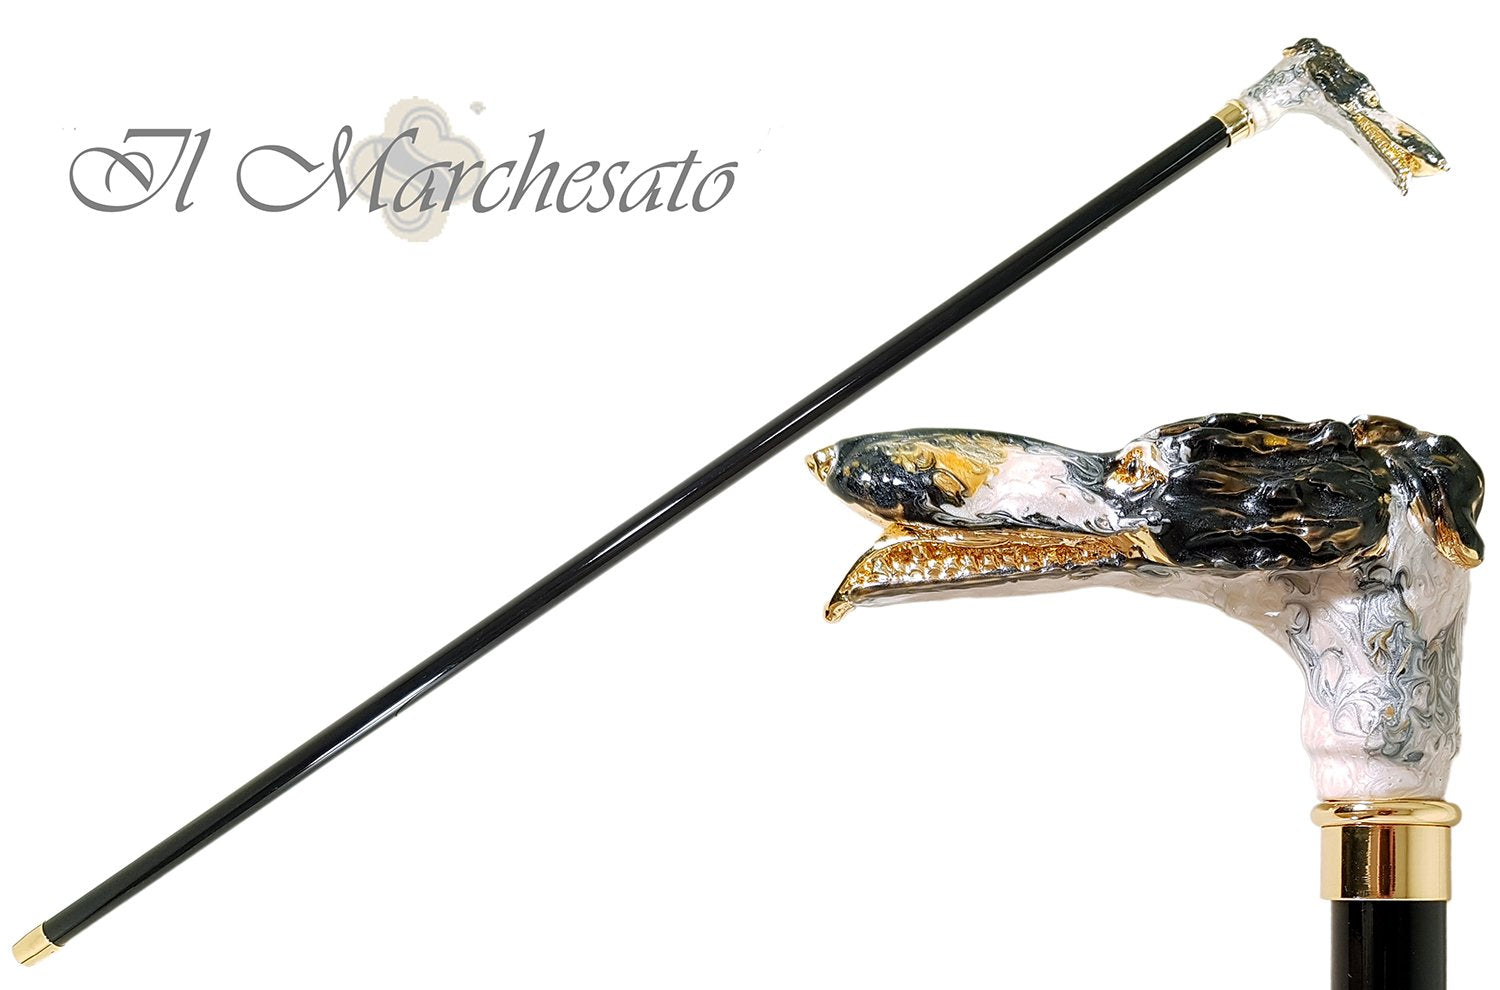 Walking Stick with a Hand-Enamelled Dog's Head on 24k Gold - il-marchesato